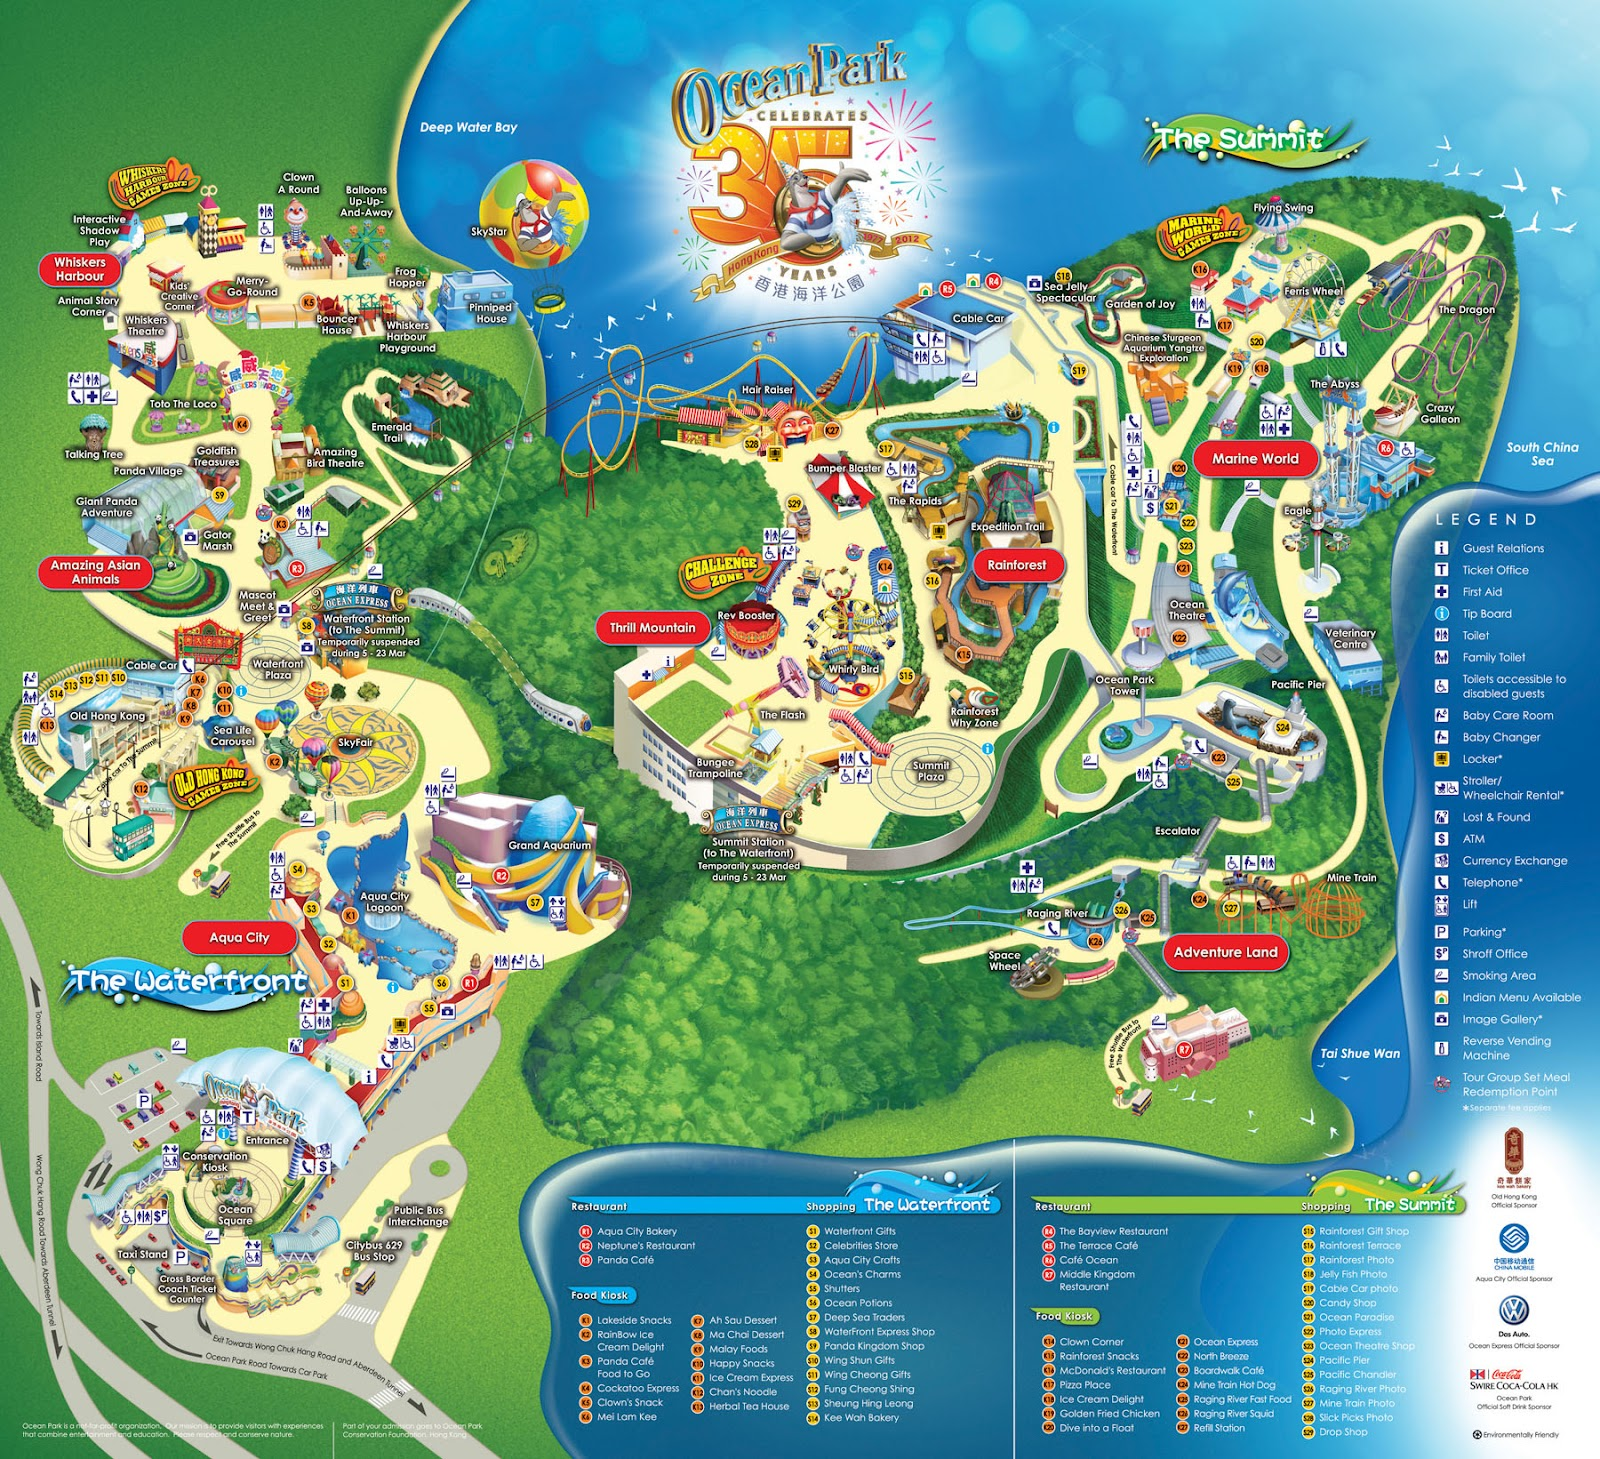 Ocean Park Map - Hong Kong Maps - China Tour Advisors on scarcity of food in china, a map form america to china, russian maps n china,